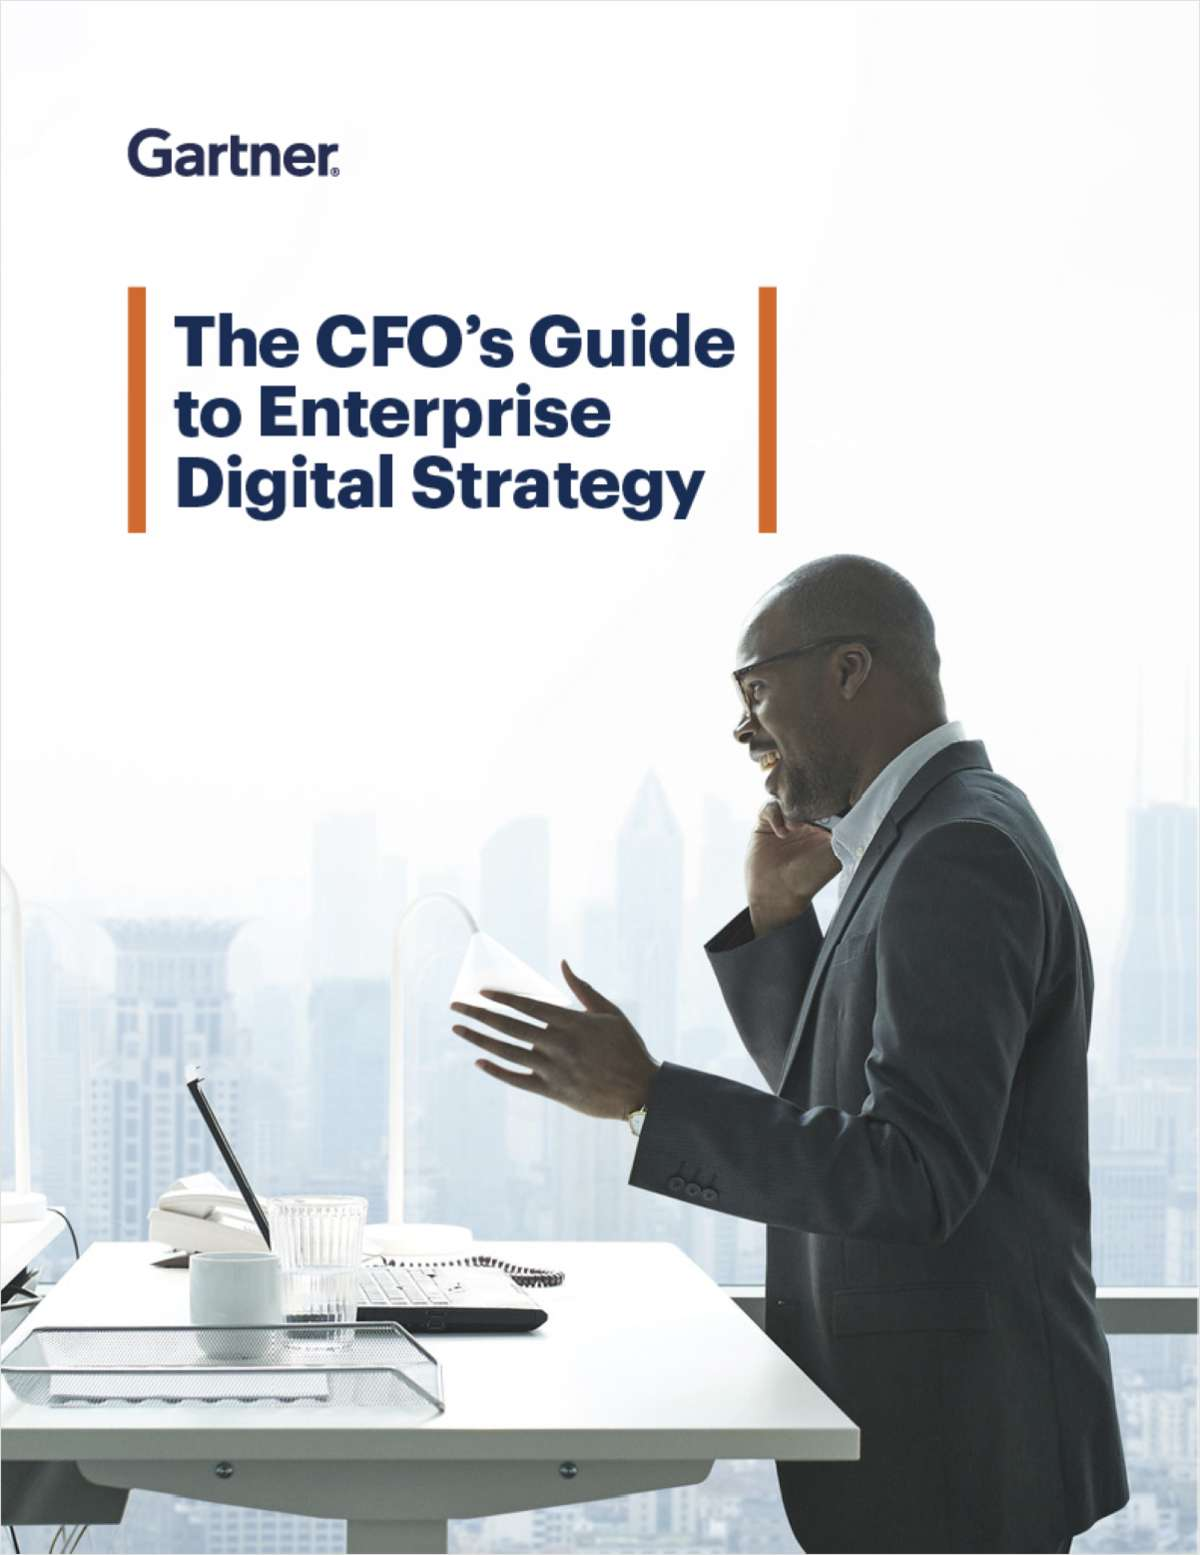 The CFO Guide to Digital Strategy